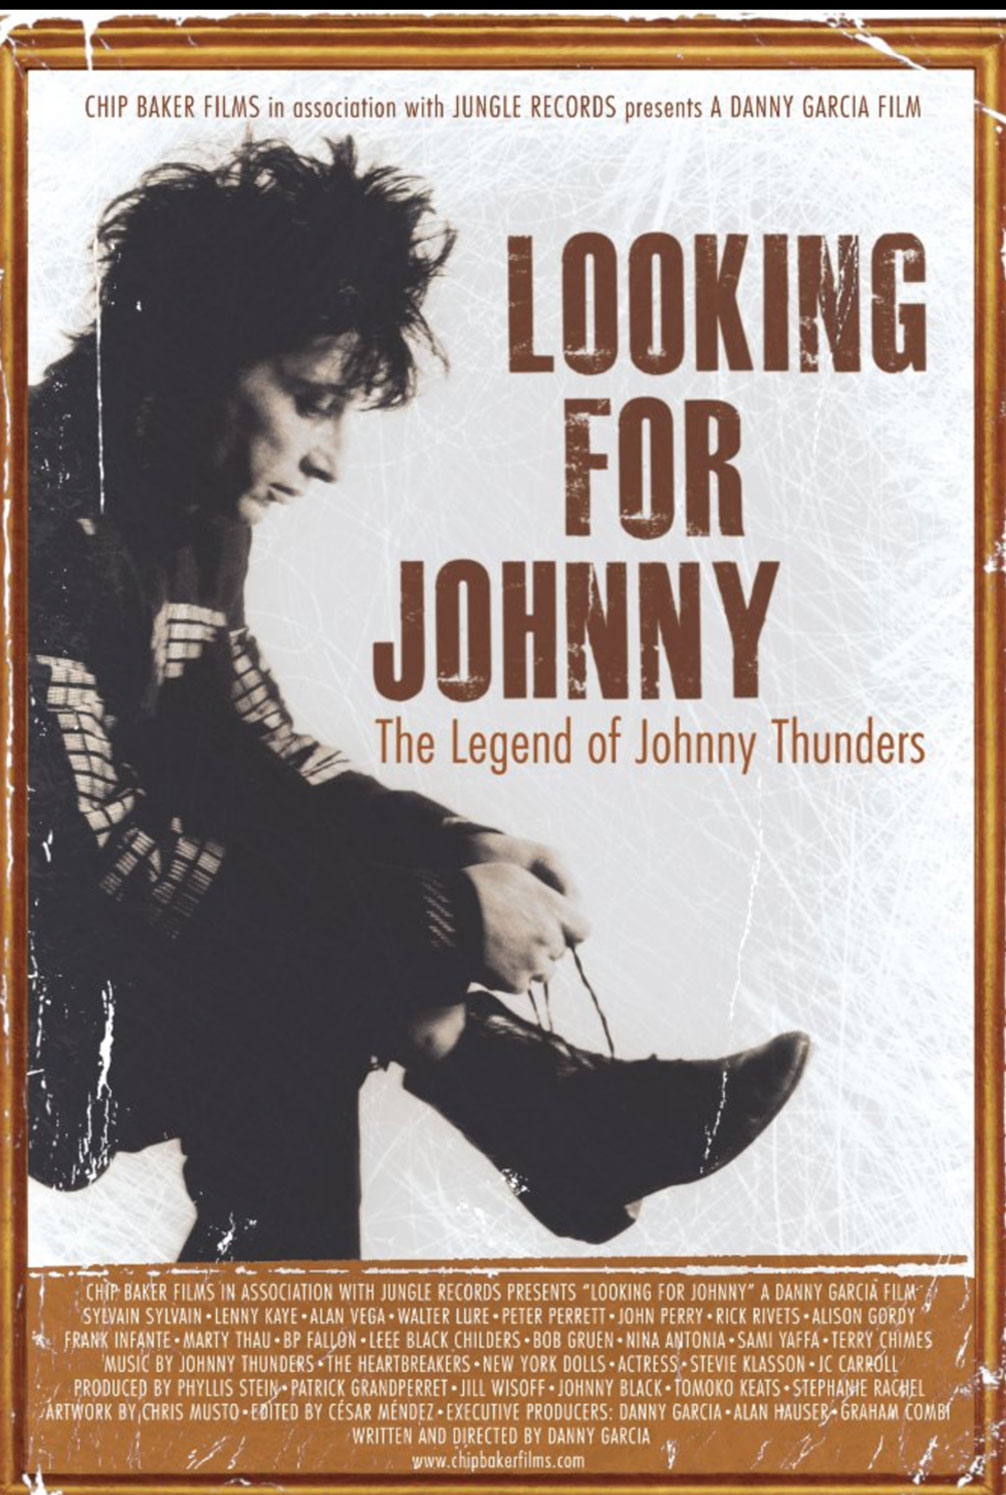 LookingforJohnny